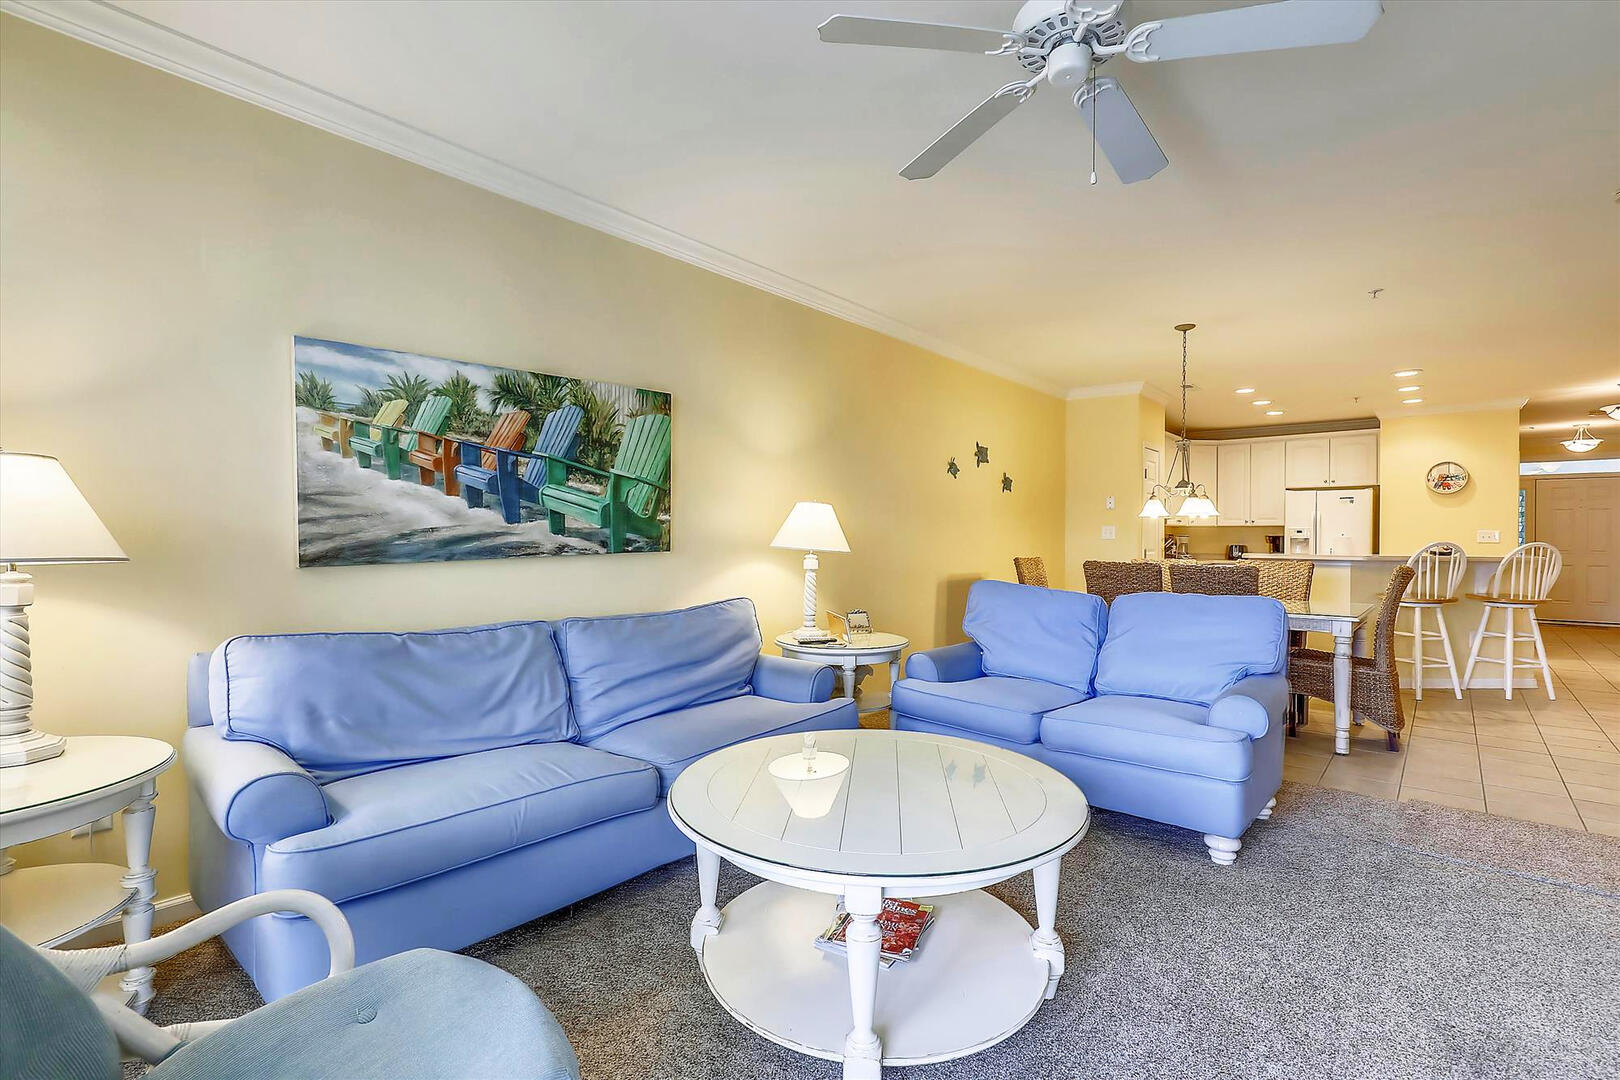 Living Room of 37 Fountain Dr. W 3C in Sunset Island